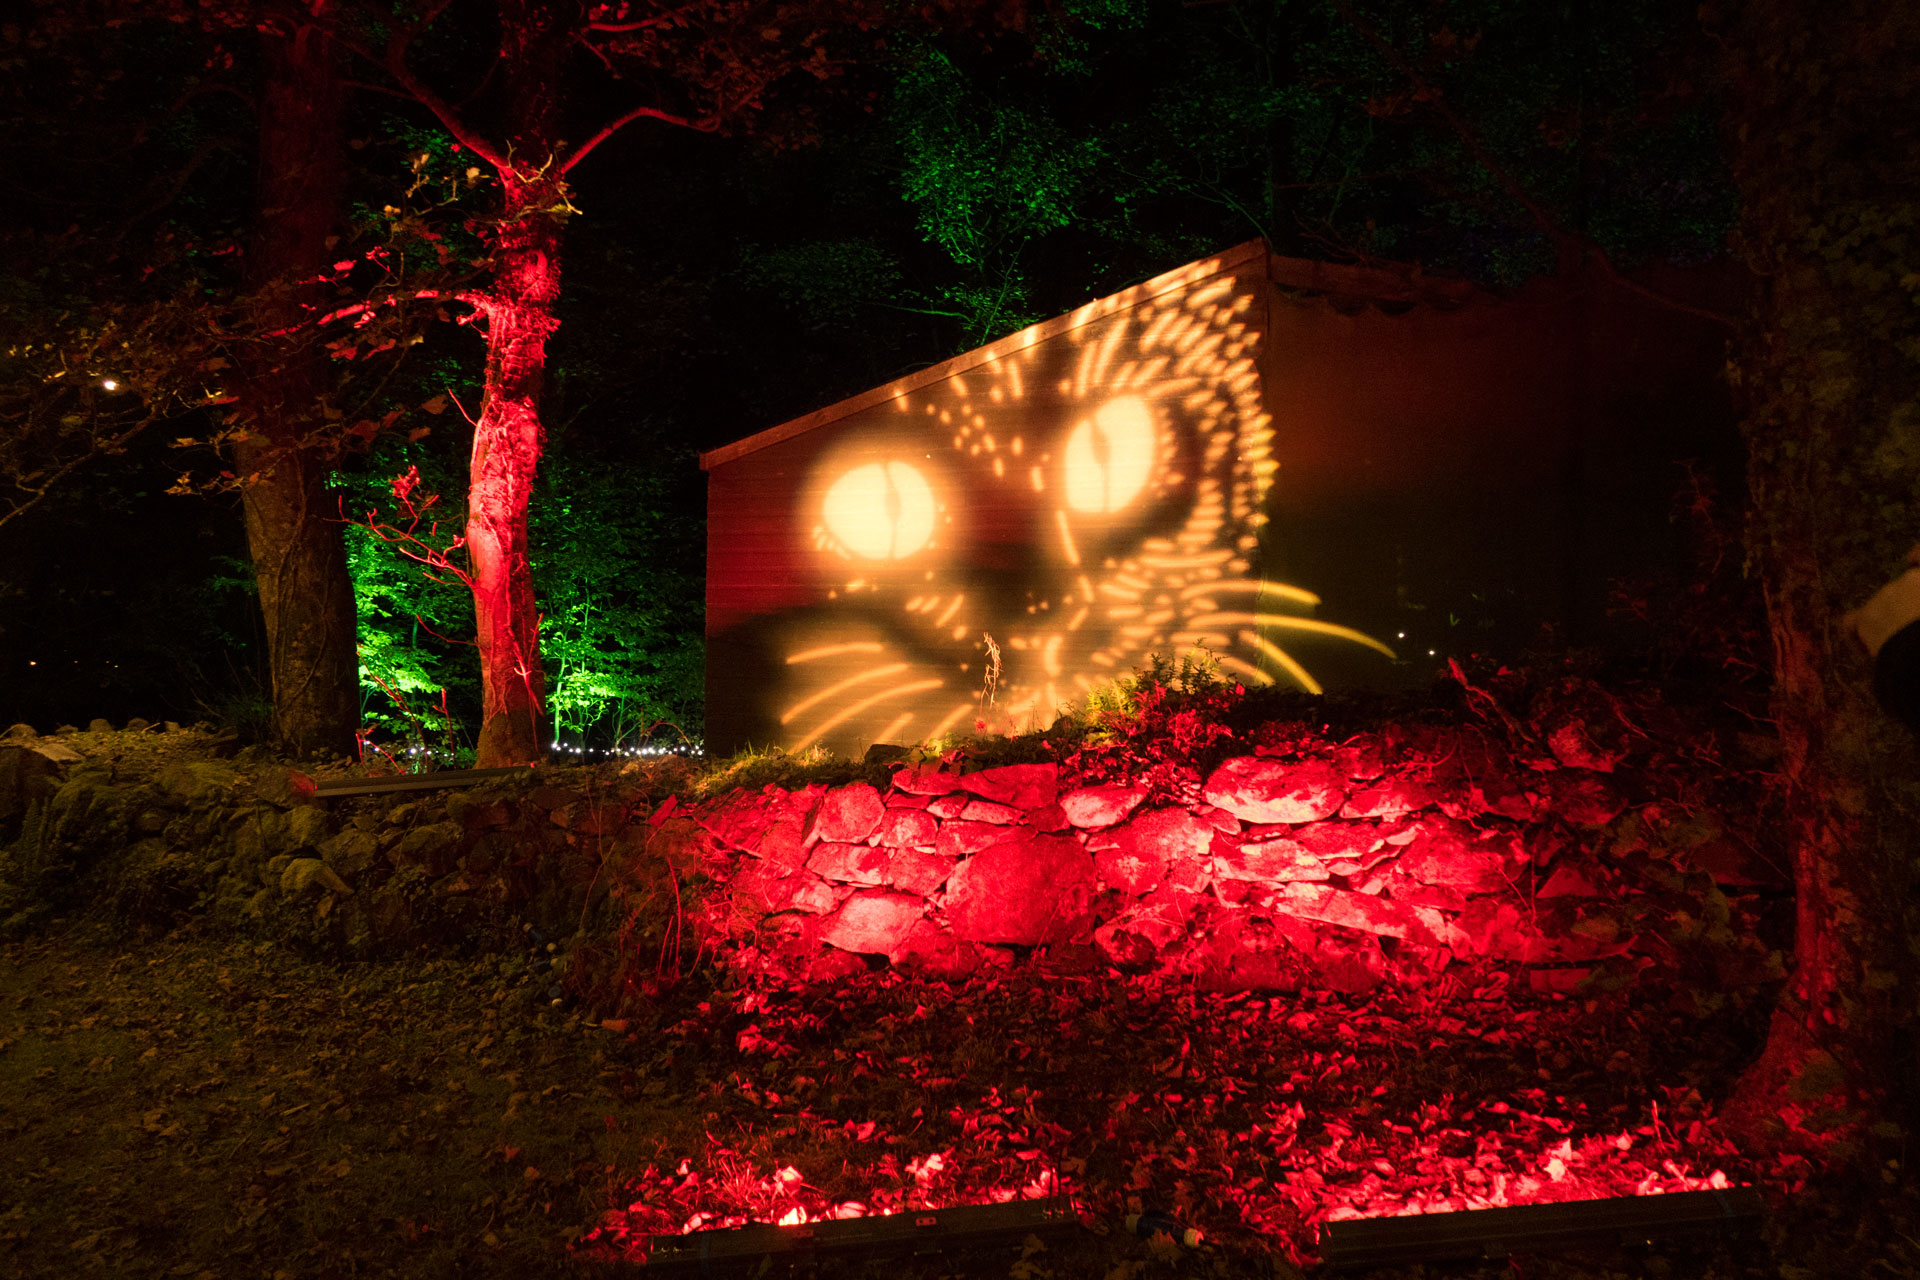 Halloween outdoor lighting event, in an enchanted illuminated forest in North Wales. Cat face gobo projection and coloured LED tree and wall lighting, in red and green, using waterproof LED battens and flood lights.